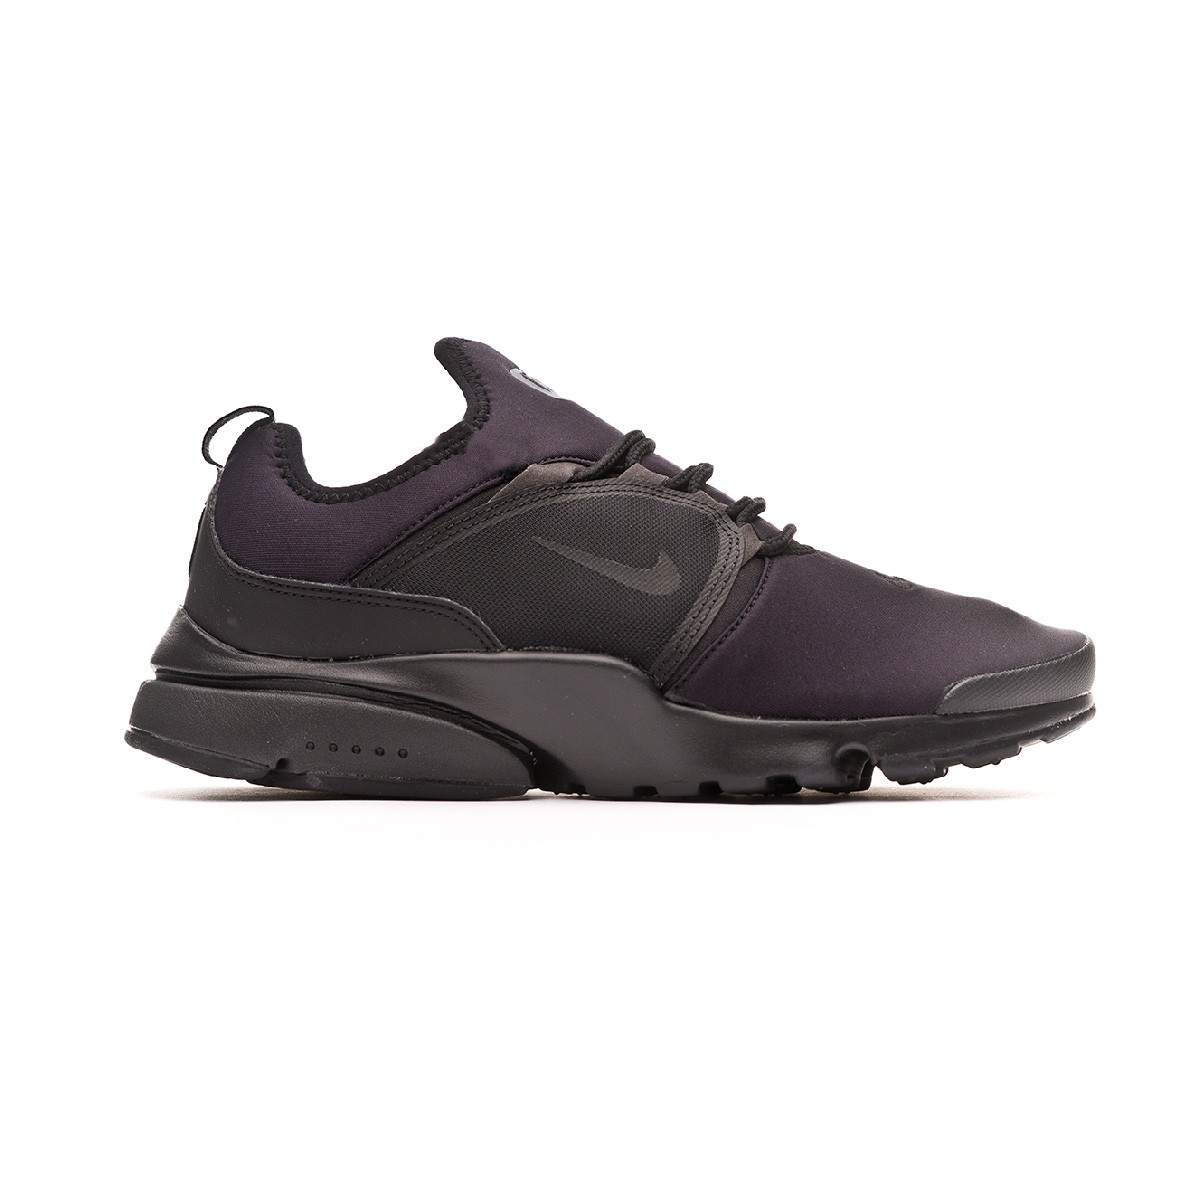 various colors 8bdd3 dbaf7 Nike Presto Fly World 2019 Trainers